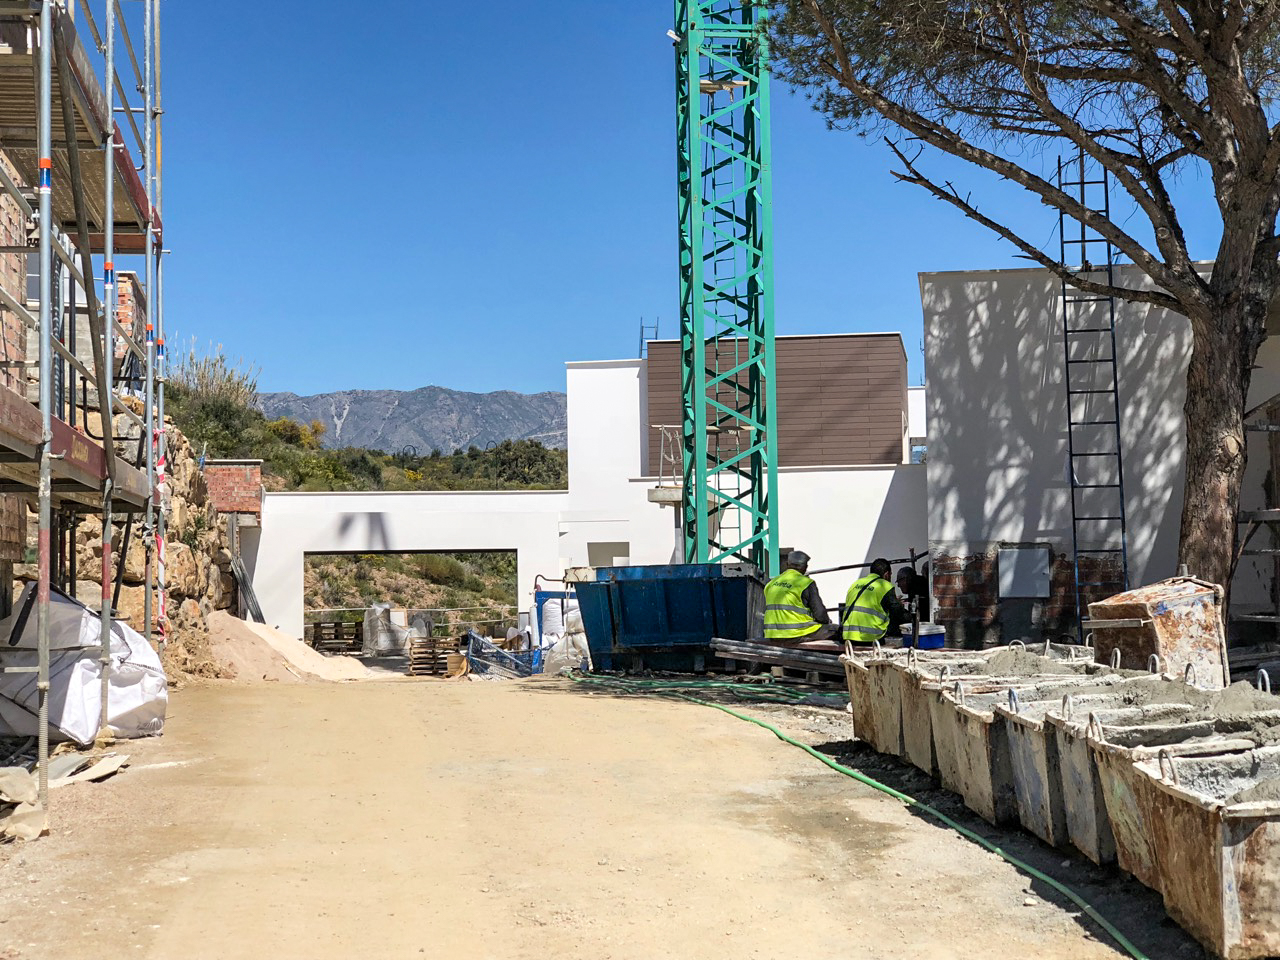 29/03/2018 The view towards Villa 8 from the street